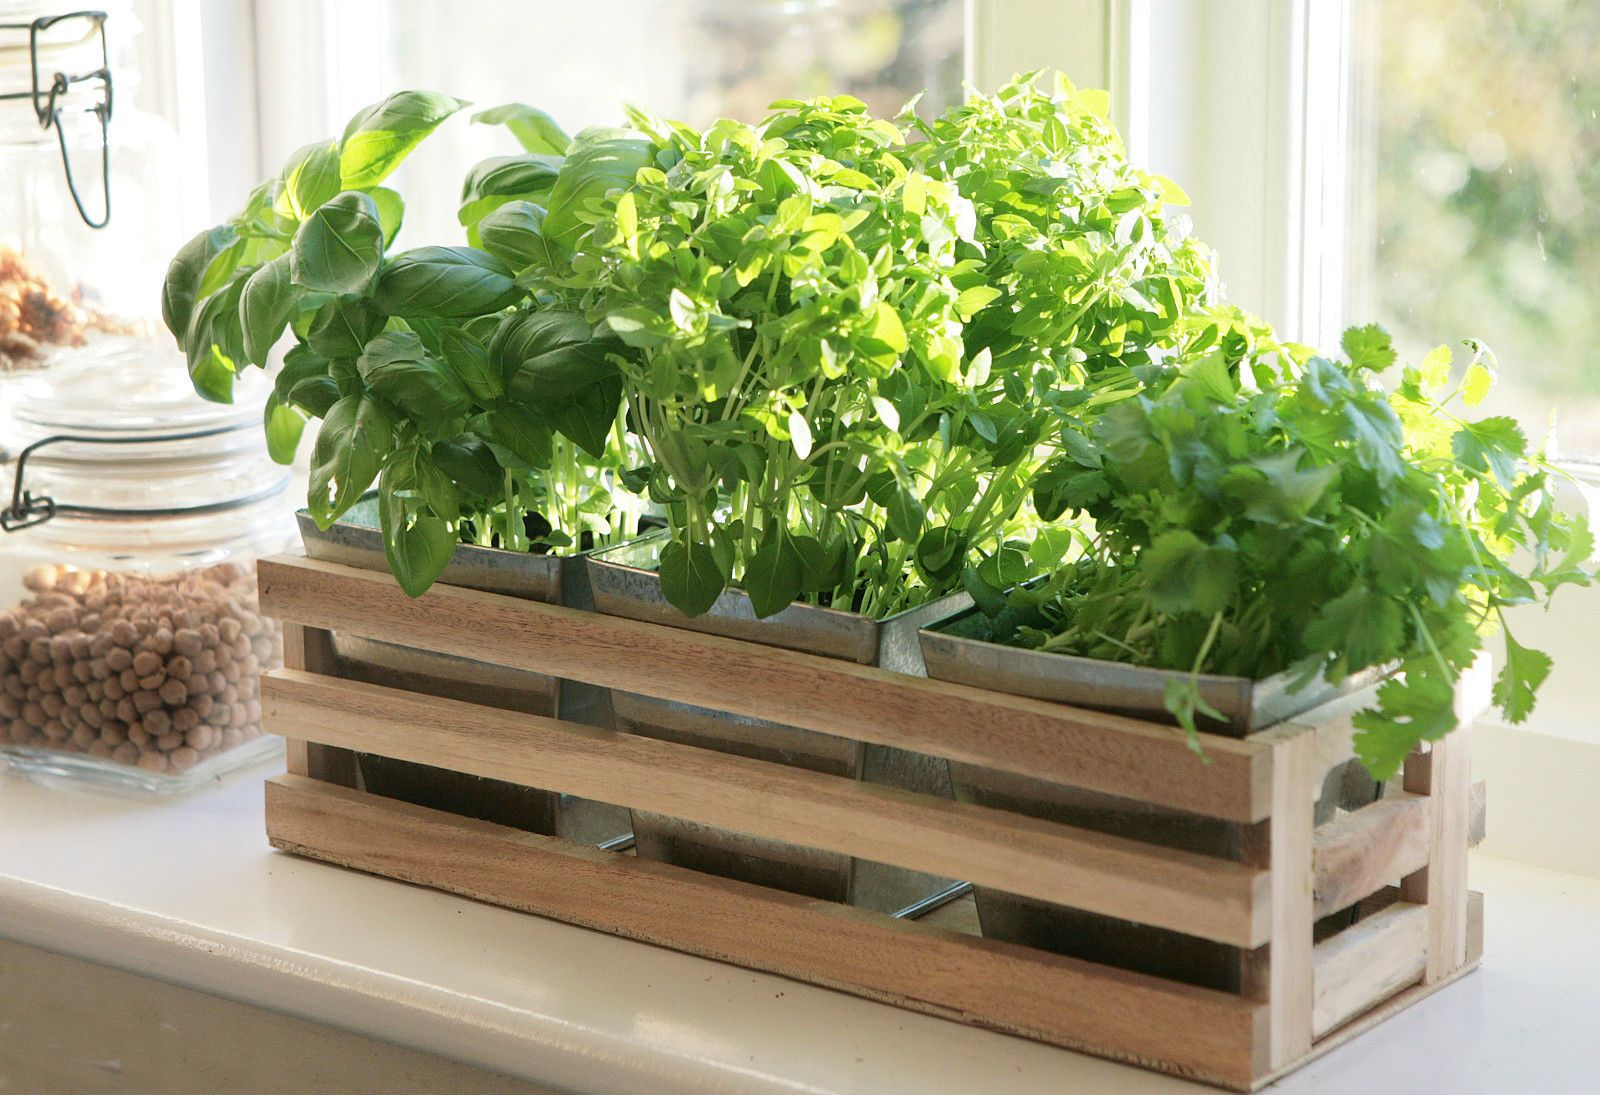 Marvelous Kitchen Herb Window Planter Box Wooden Trough U0026 Metal Plant Pots Indoor  Garden